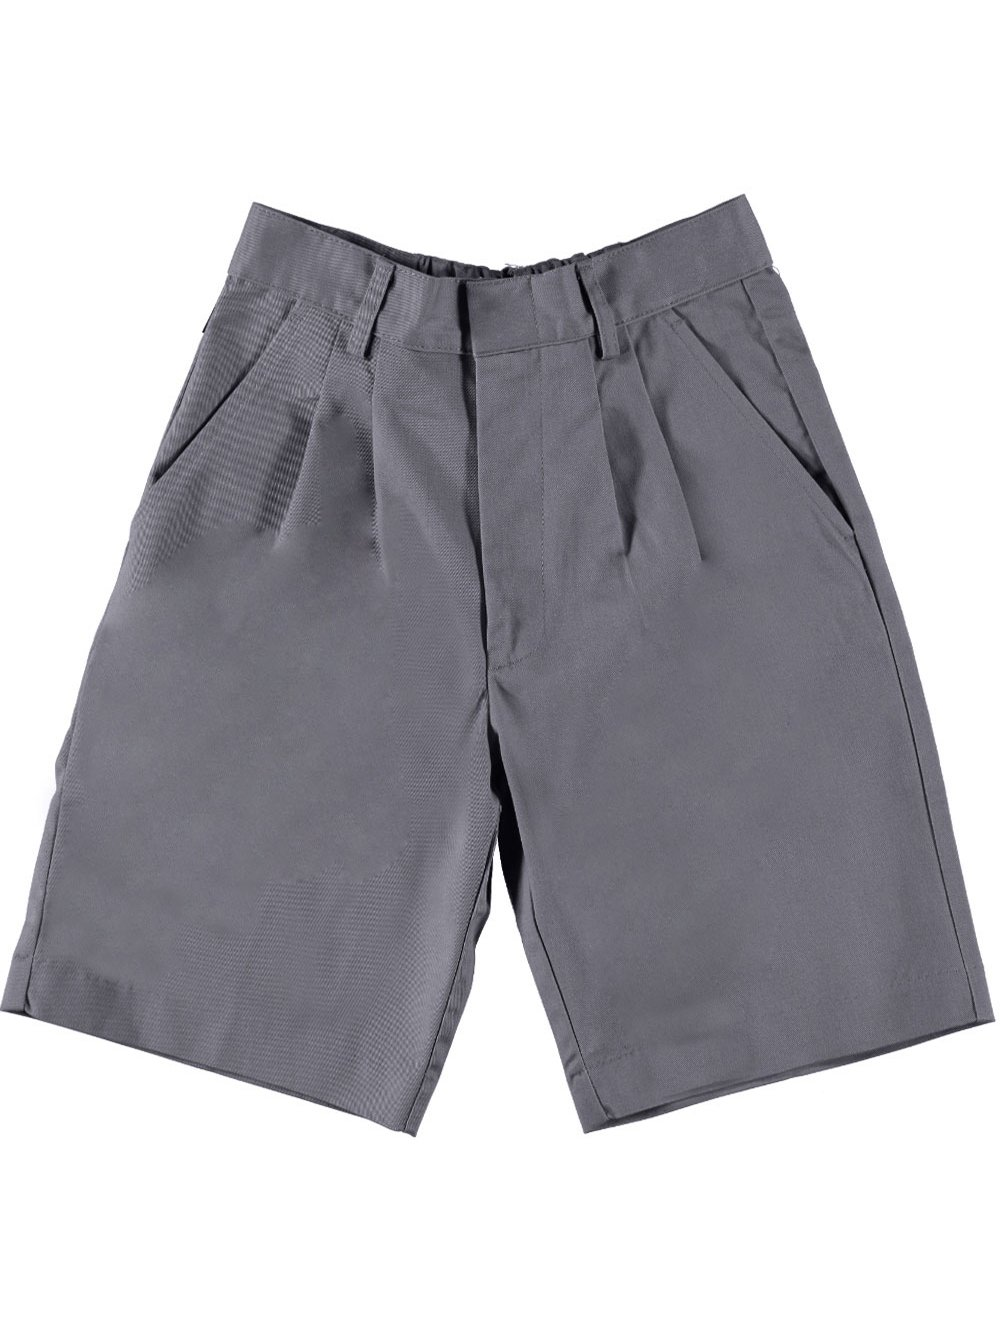 Universal Little Unisex' Basic Pleated Shorts